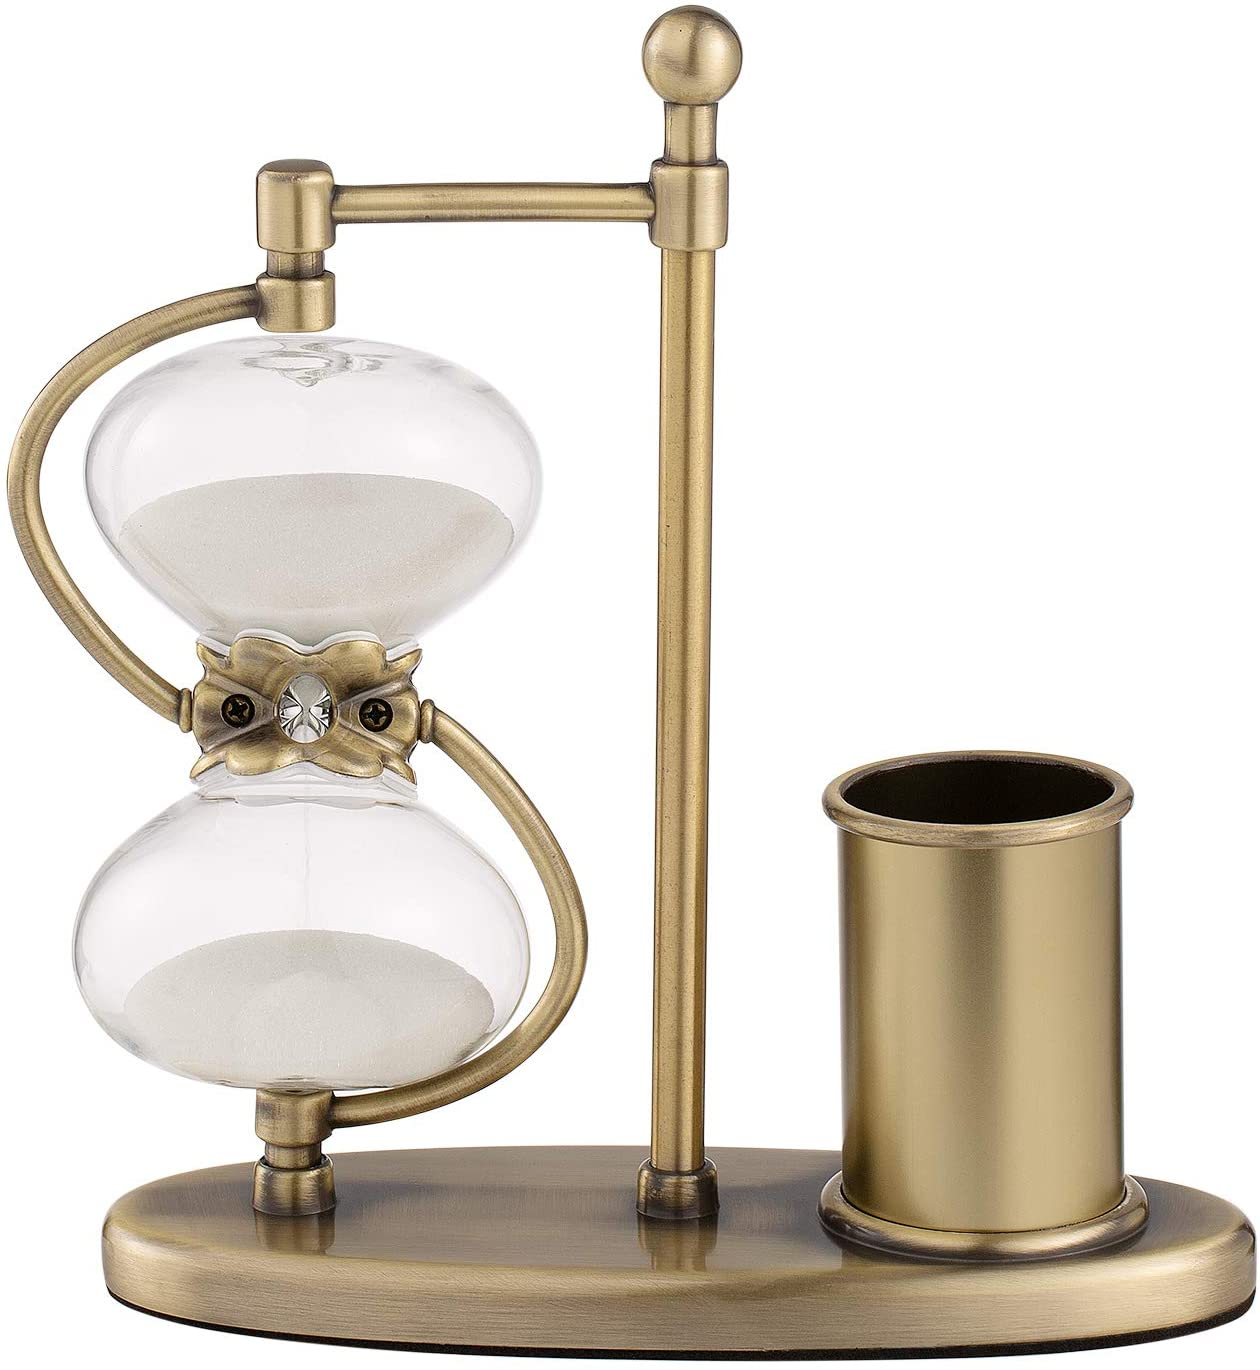 KSMA Metal Pen Polder Hourglass 60 Minutes,360°Rotating Brass-Tone Hour Glass Sand Timer for Home Wedding Gift with White Sand